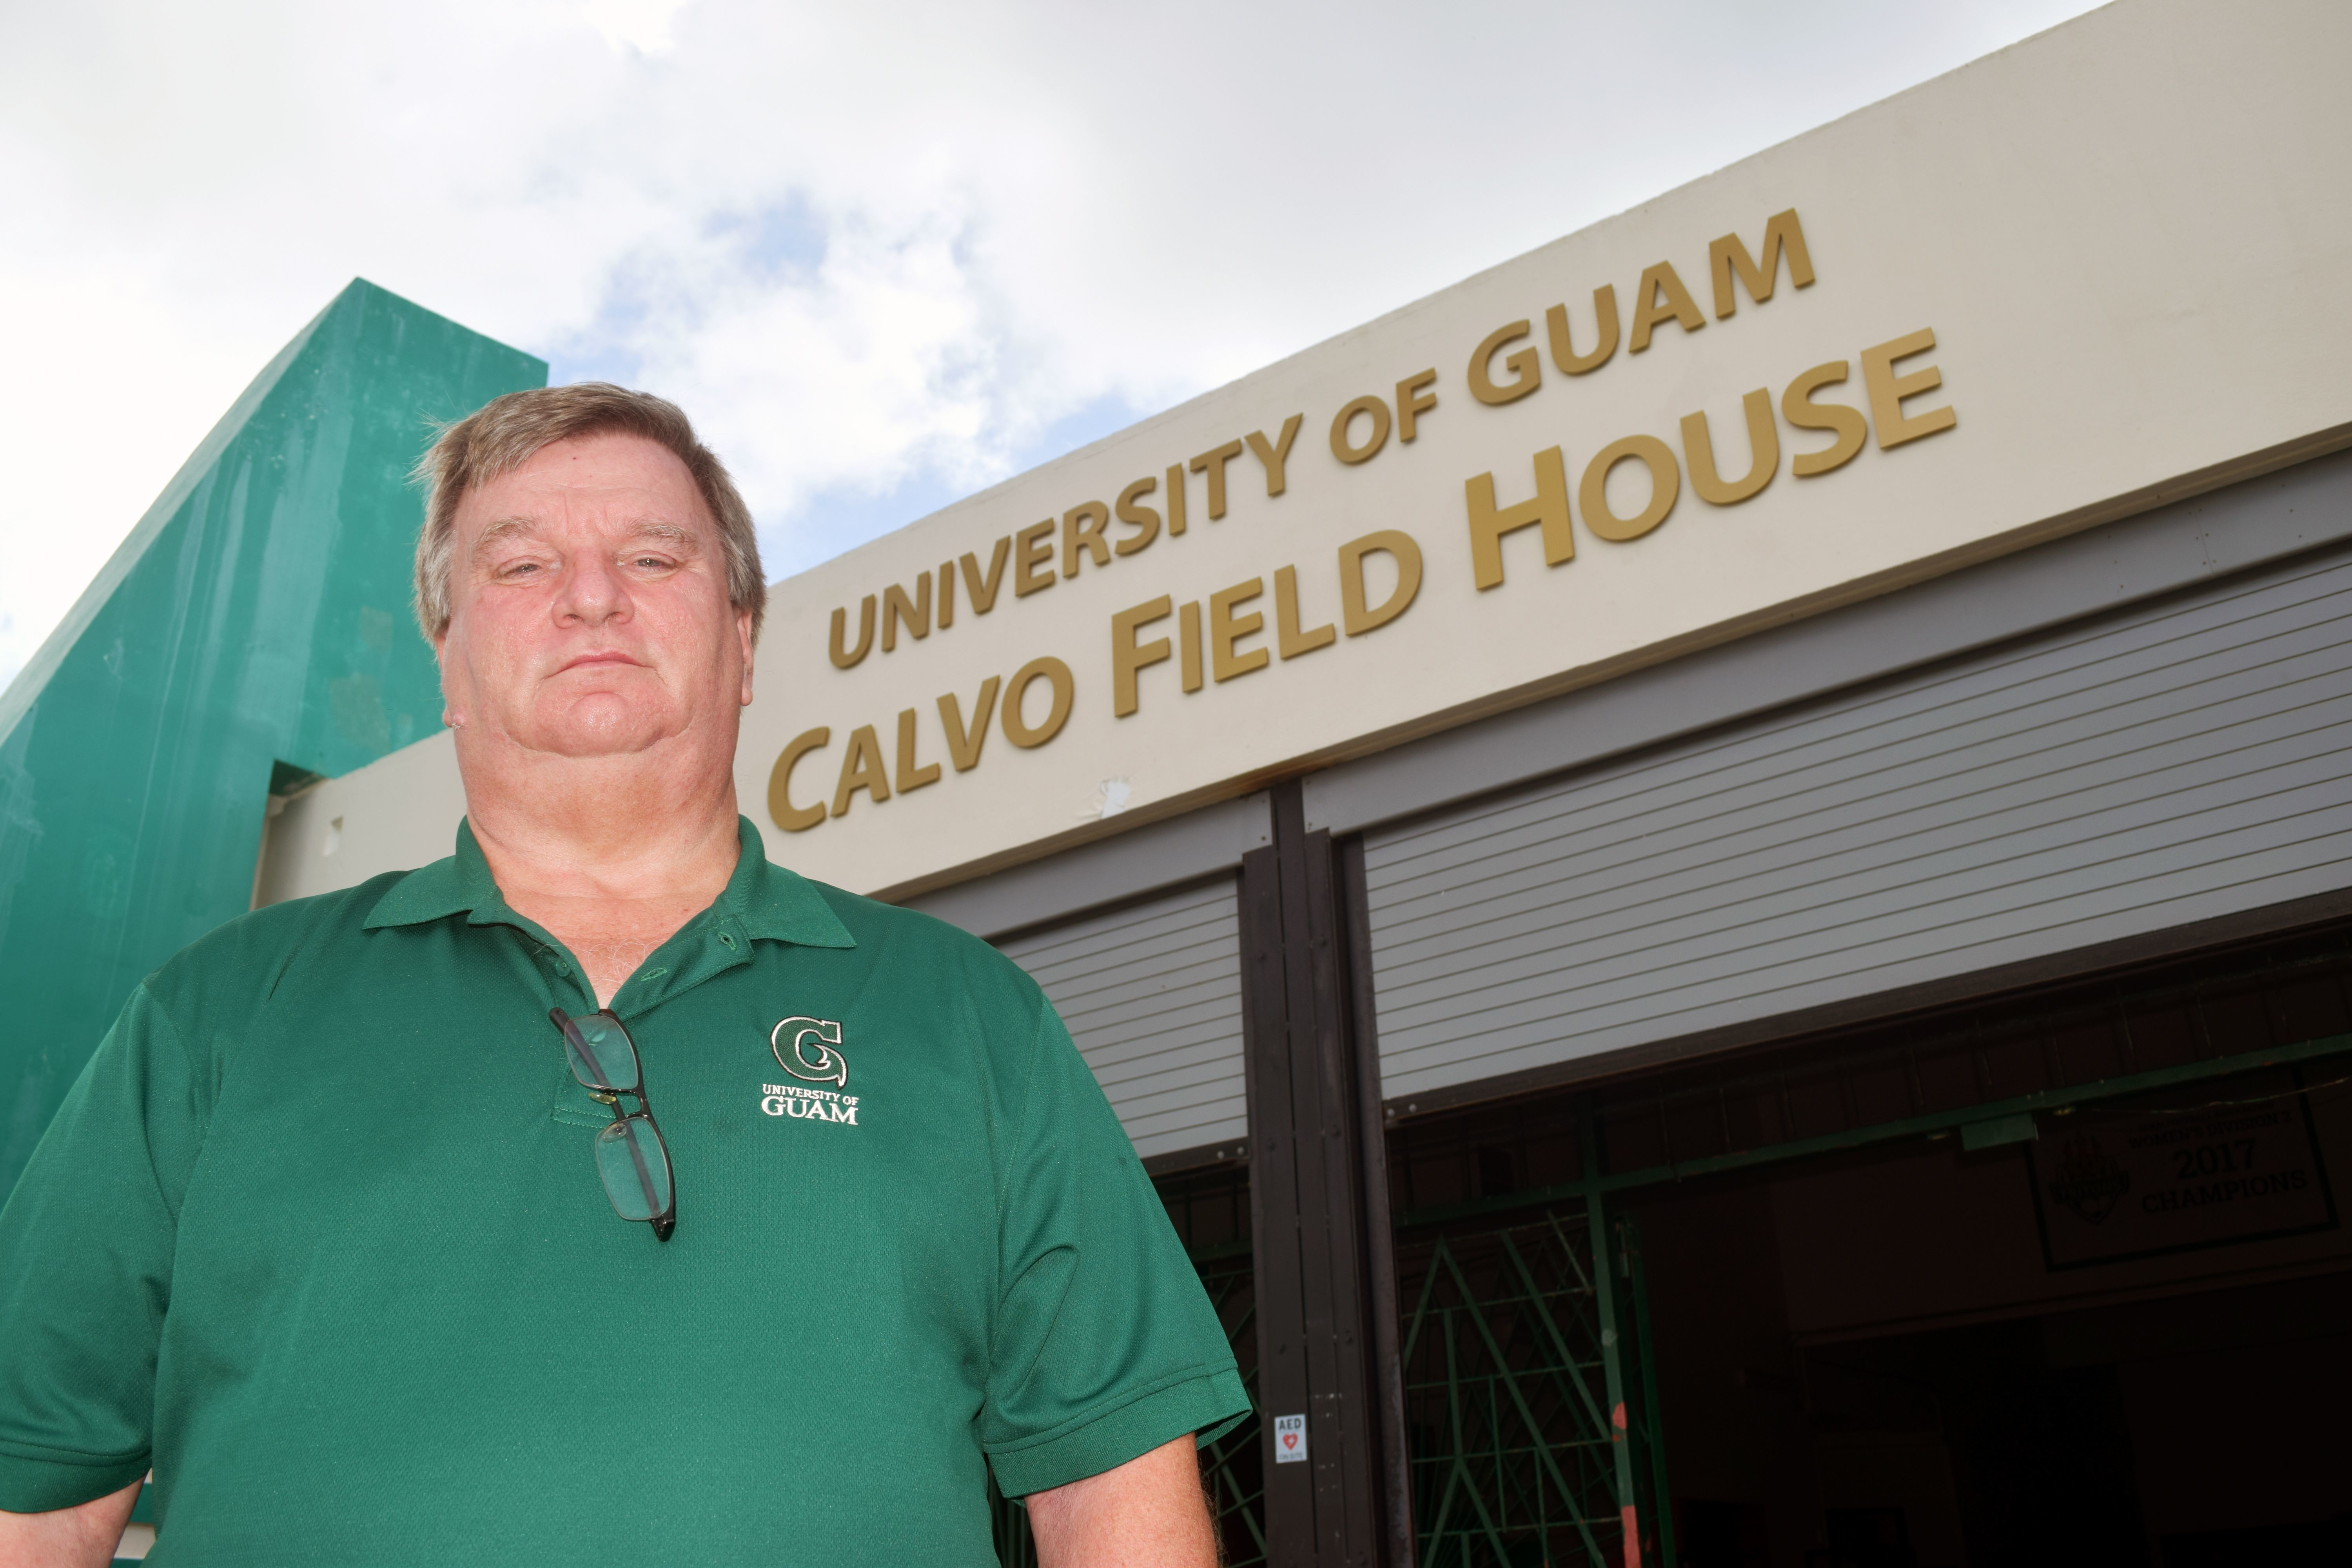 University of Guam Athletics Director Douglas Palmer stands outside the UOG Calvo Field House.